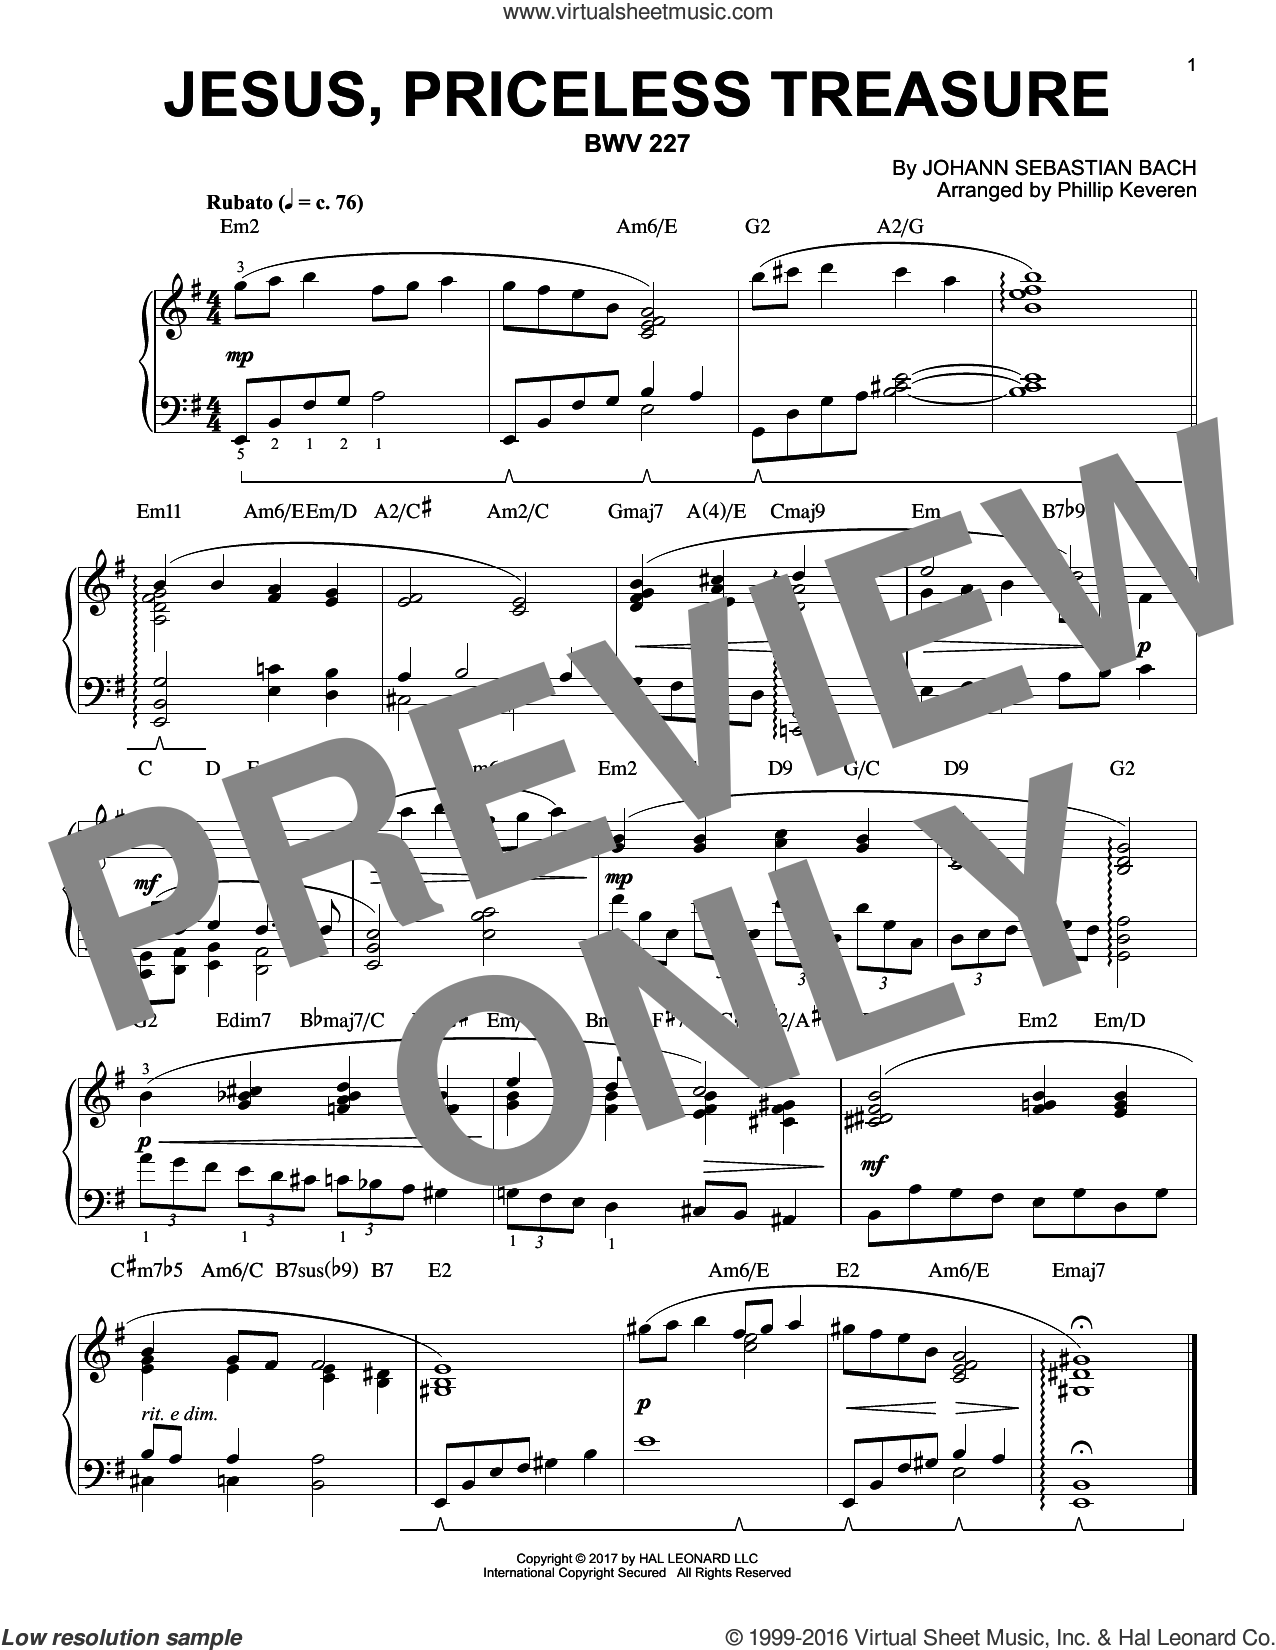 Jesus, Priceless Treasure, BWV 227 sheet music for piano solo by Johann Sebastian Bach and Phillip Keveren. Score Image Preview.